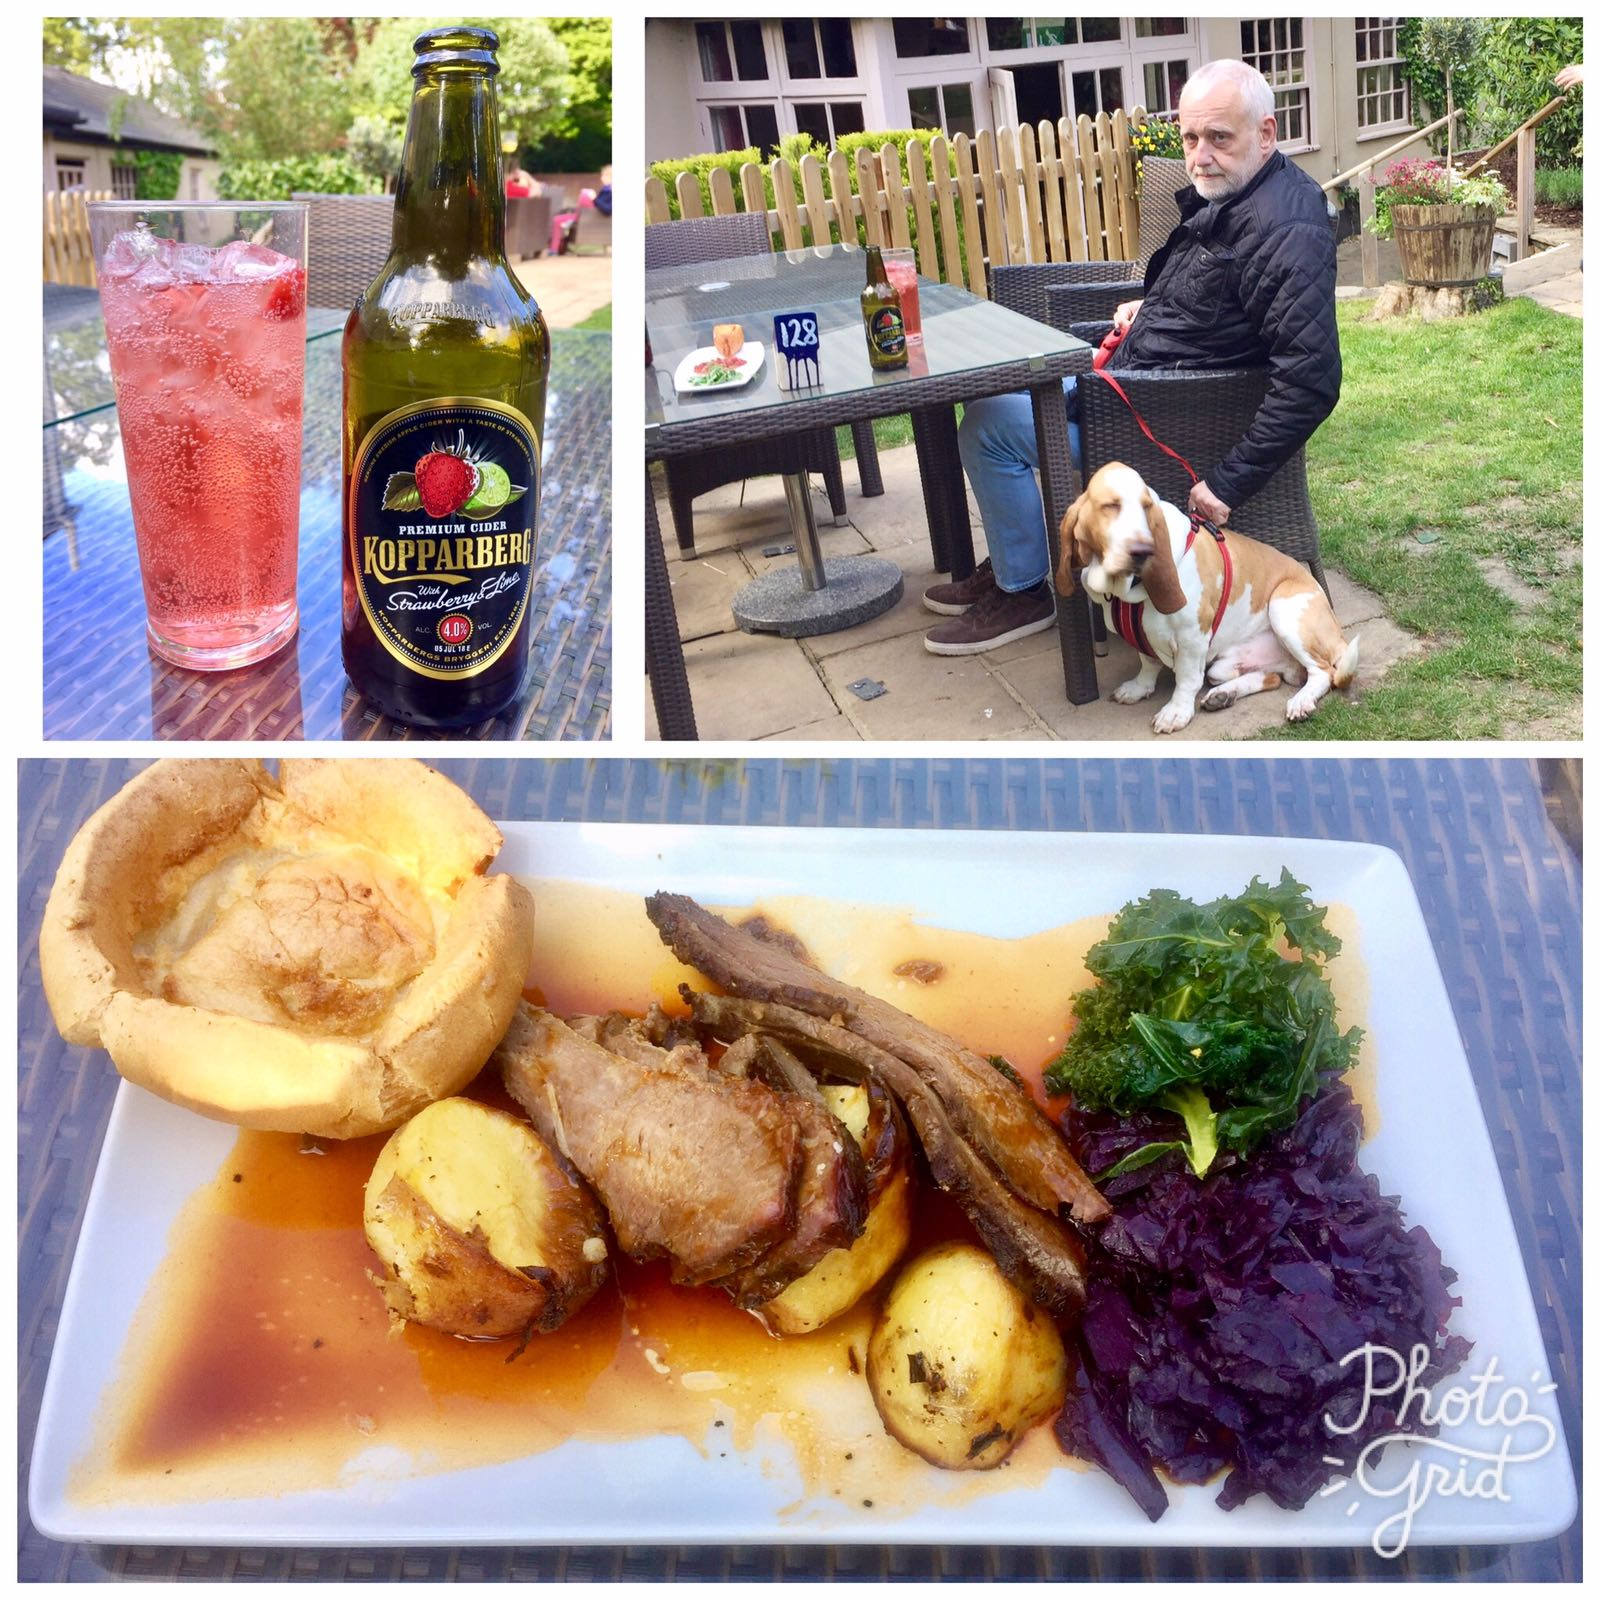 Sunday Roast- Cowper's Arms, Letty Green, Hertford